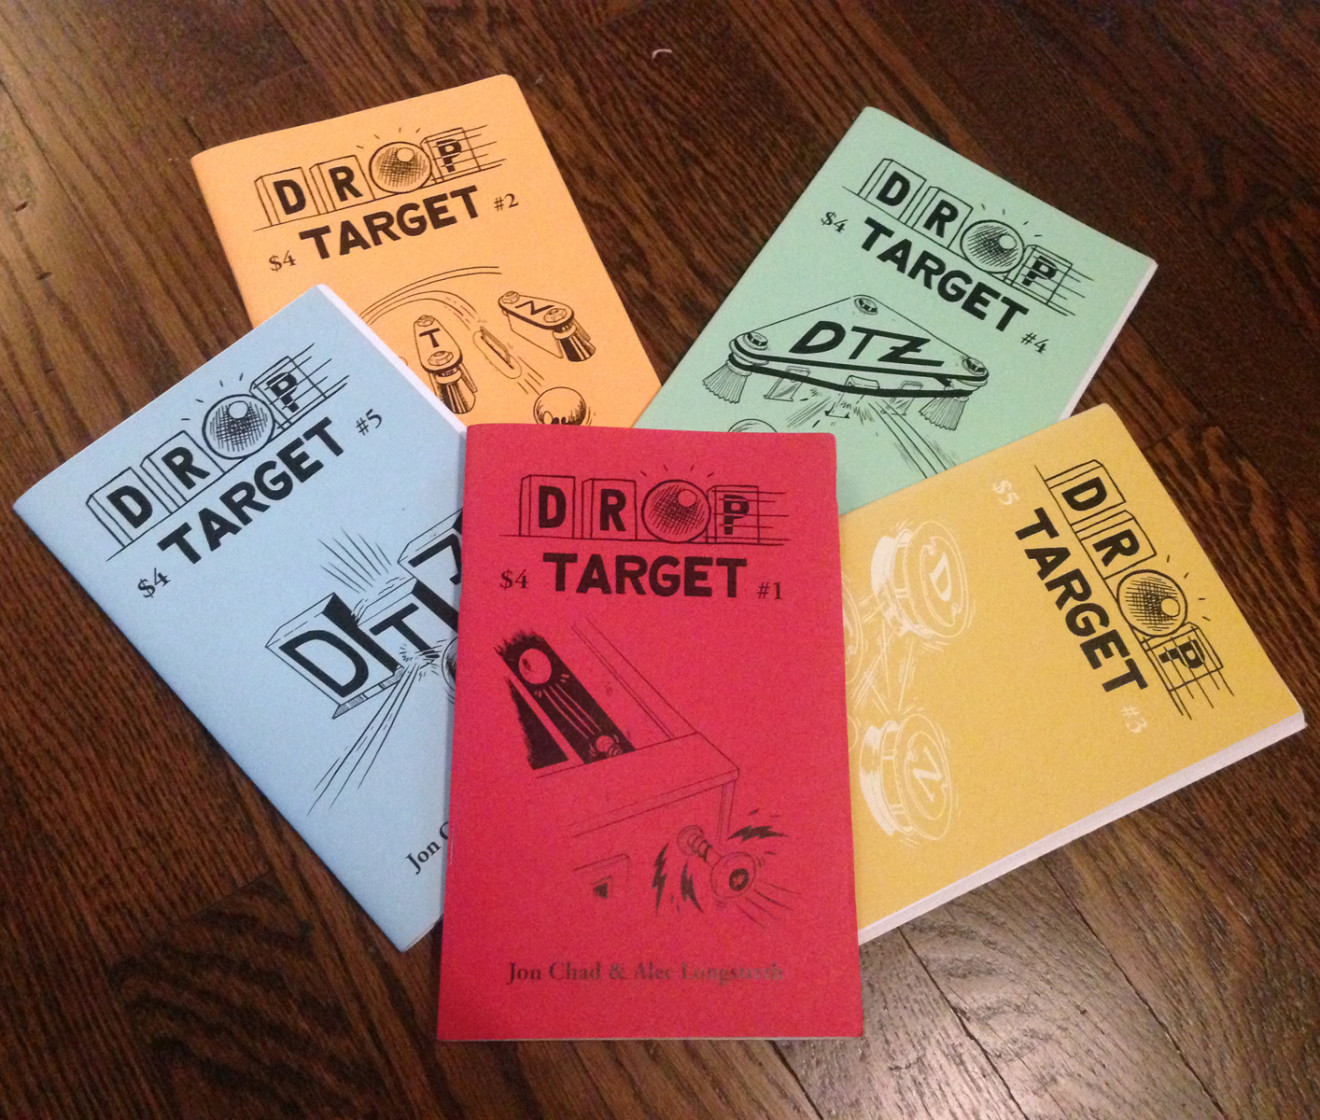 Drop Target Zine by Jon Chad & Alec Longstreth